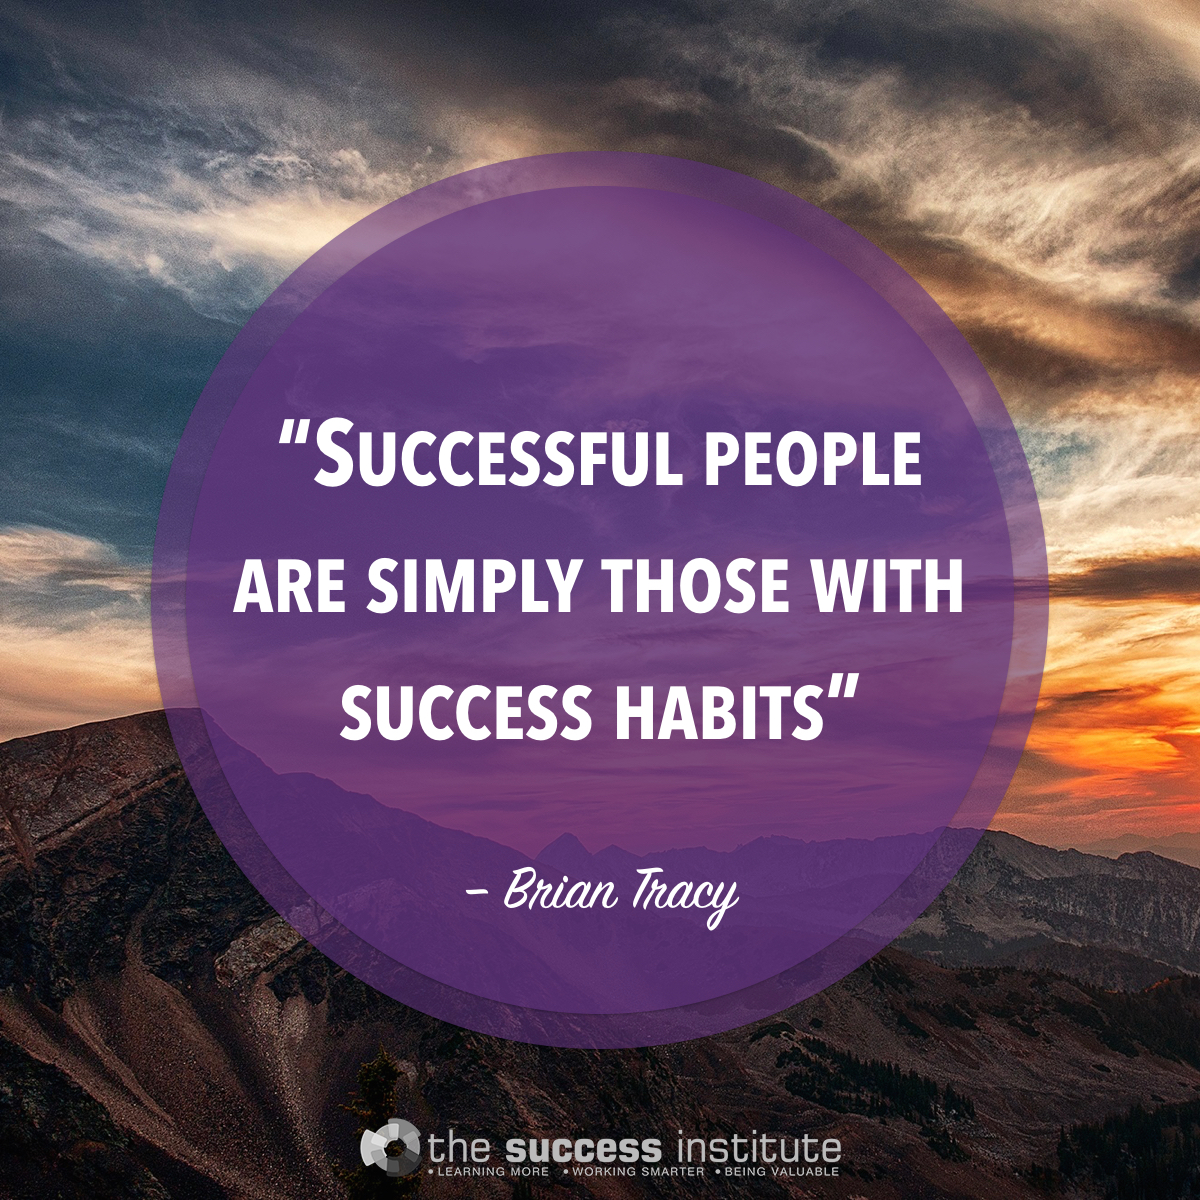 Successful people are simply those with success habits.